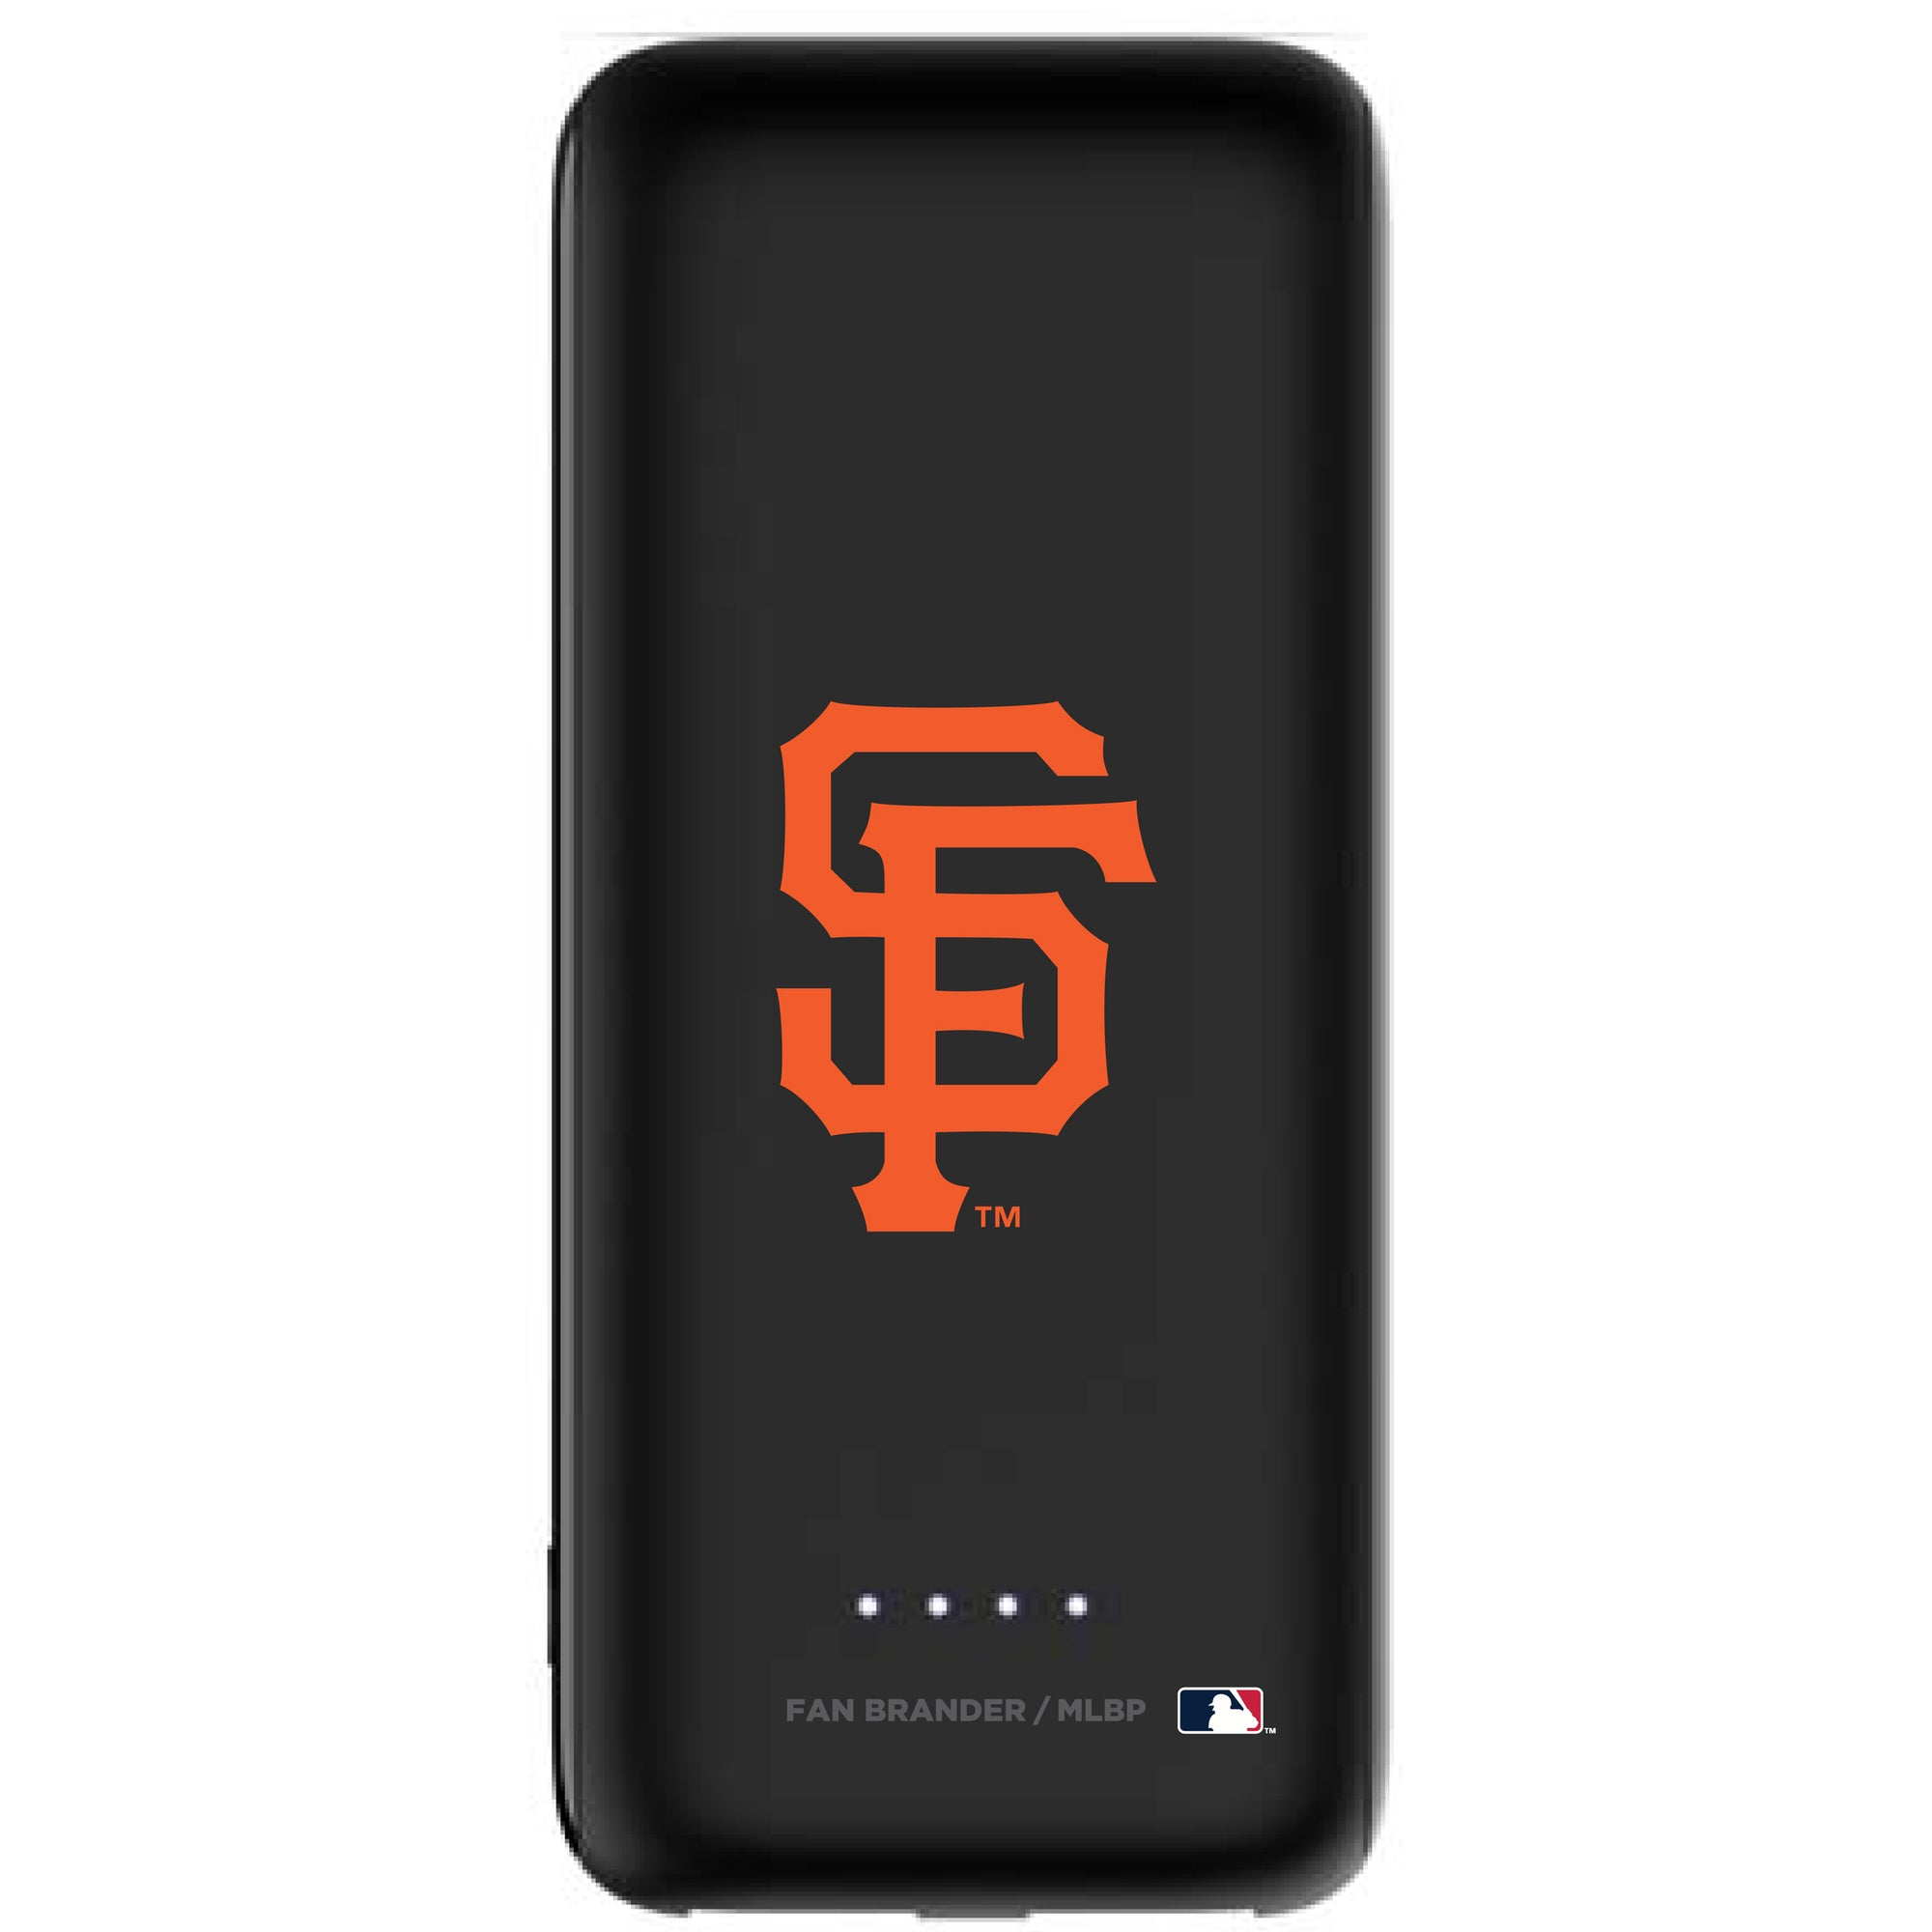 San Francisco Giants Power Boost Mini 5,200 mAH